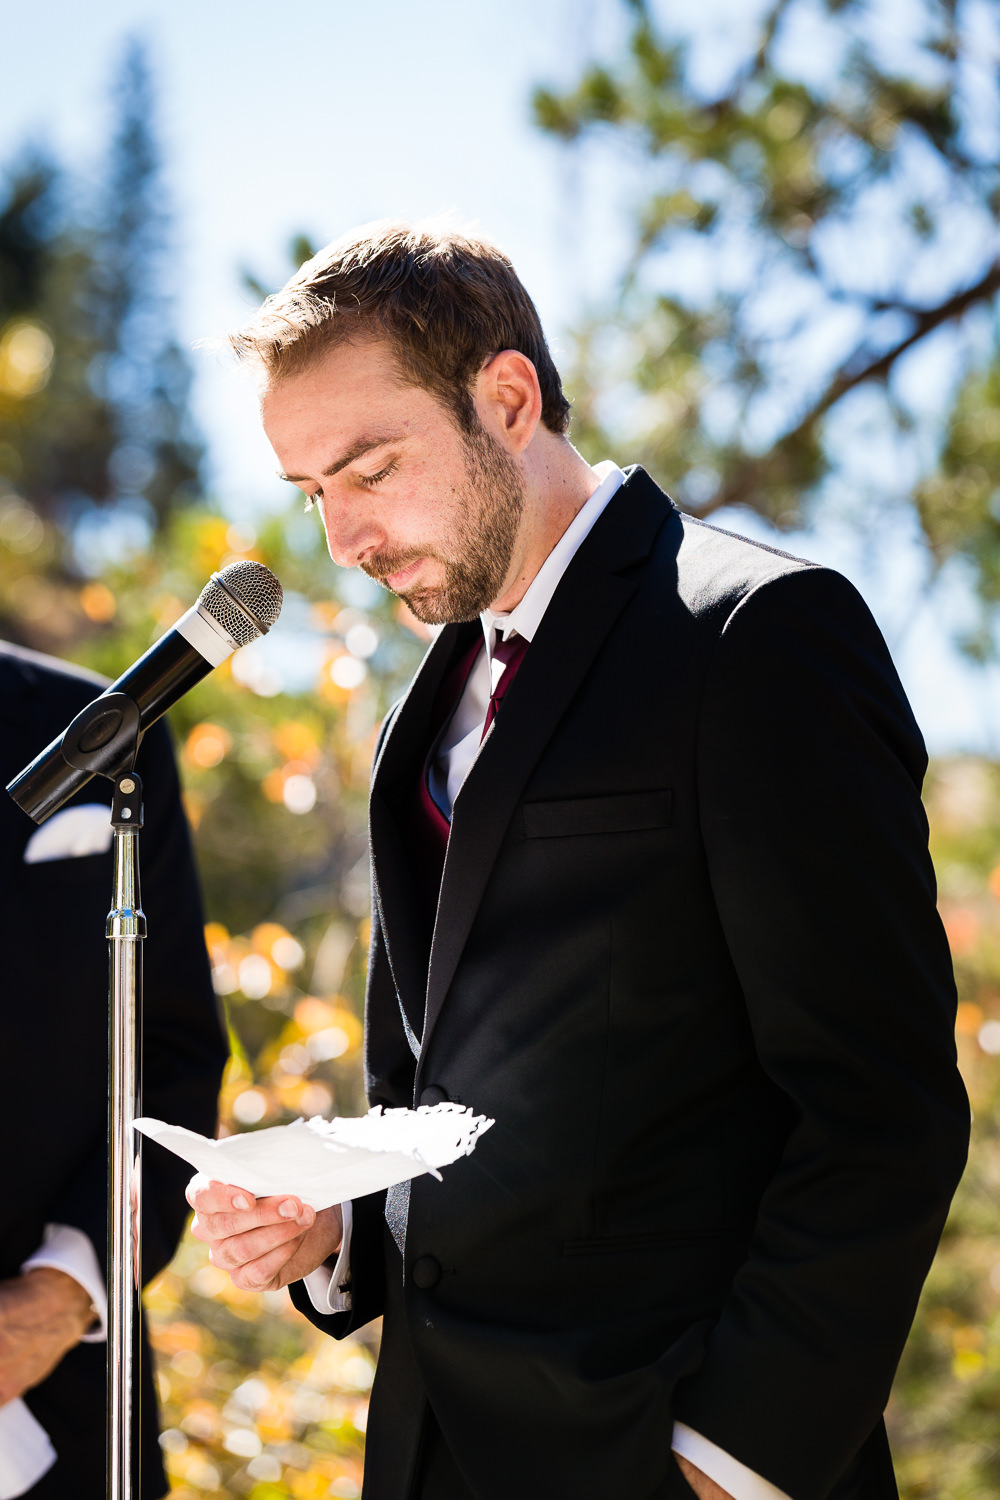 absaroka-beartooth-wilderness-montana-wedding-ceremony-groom-says-vows.jpg